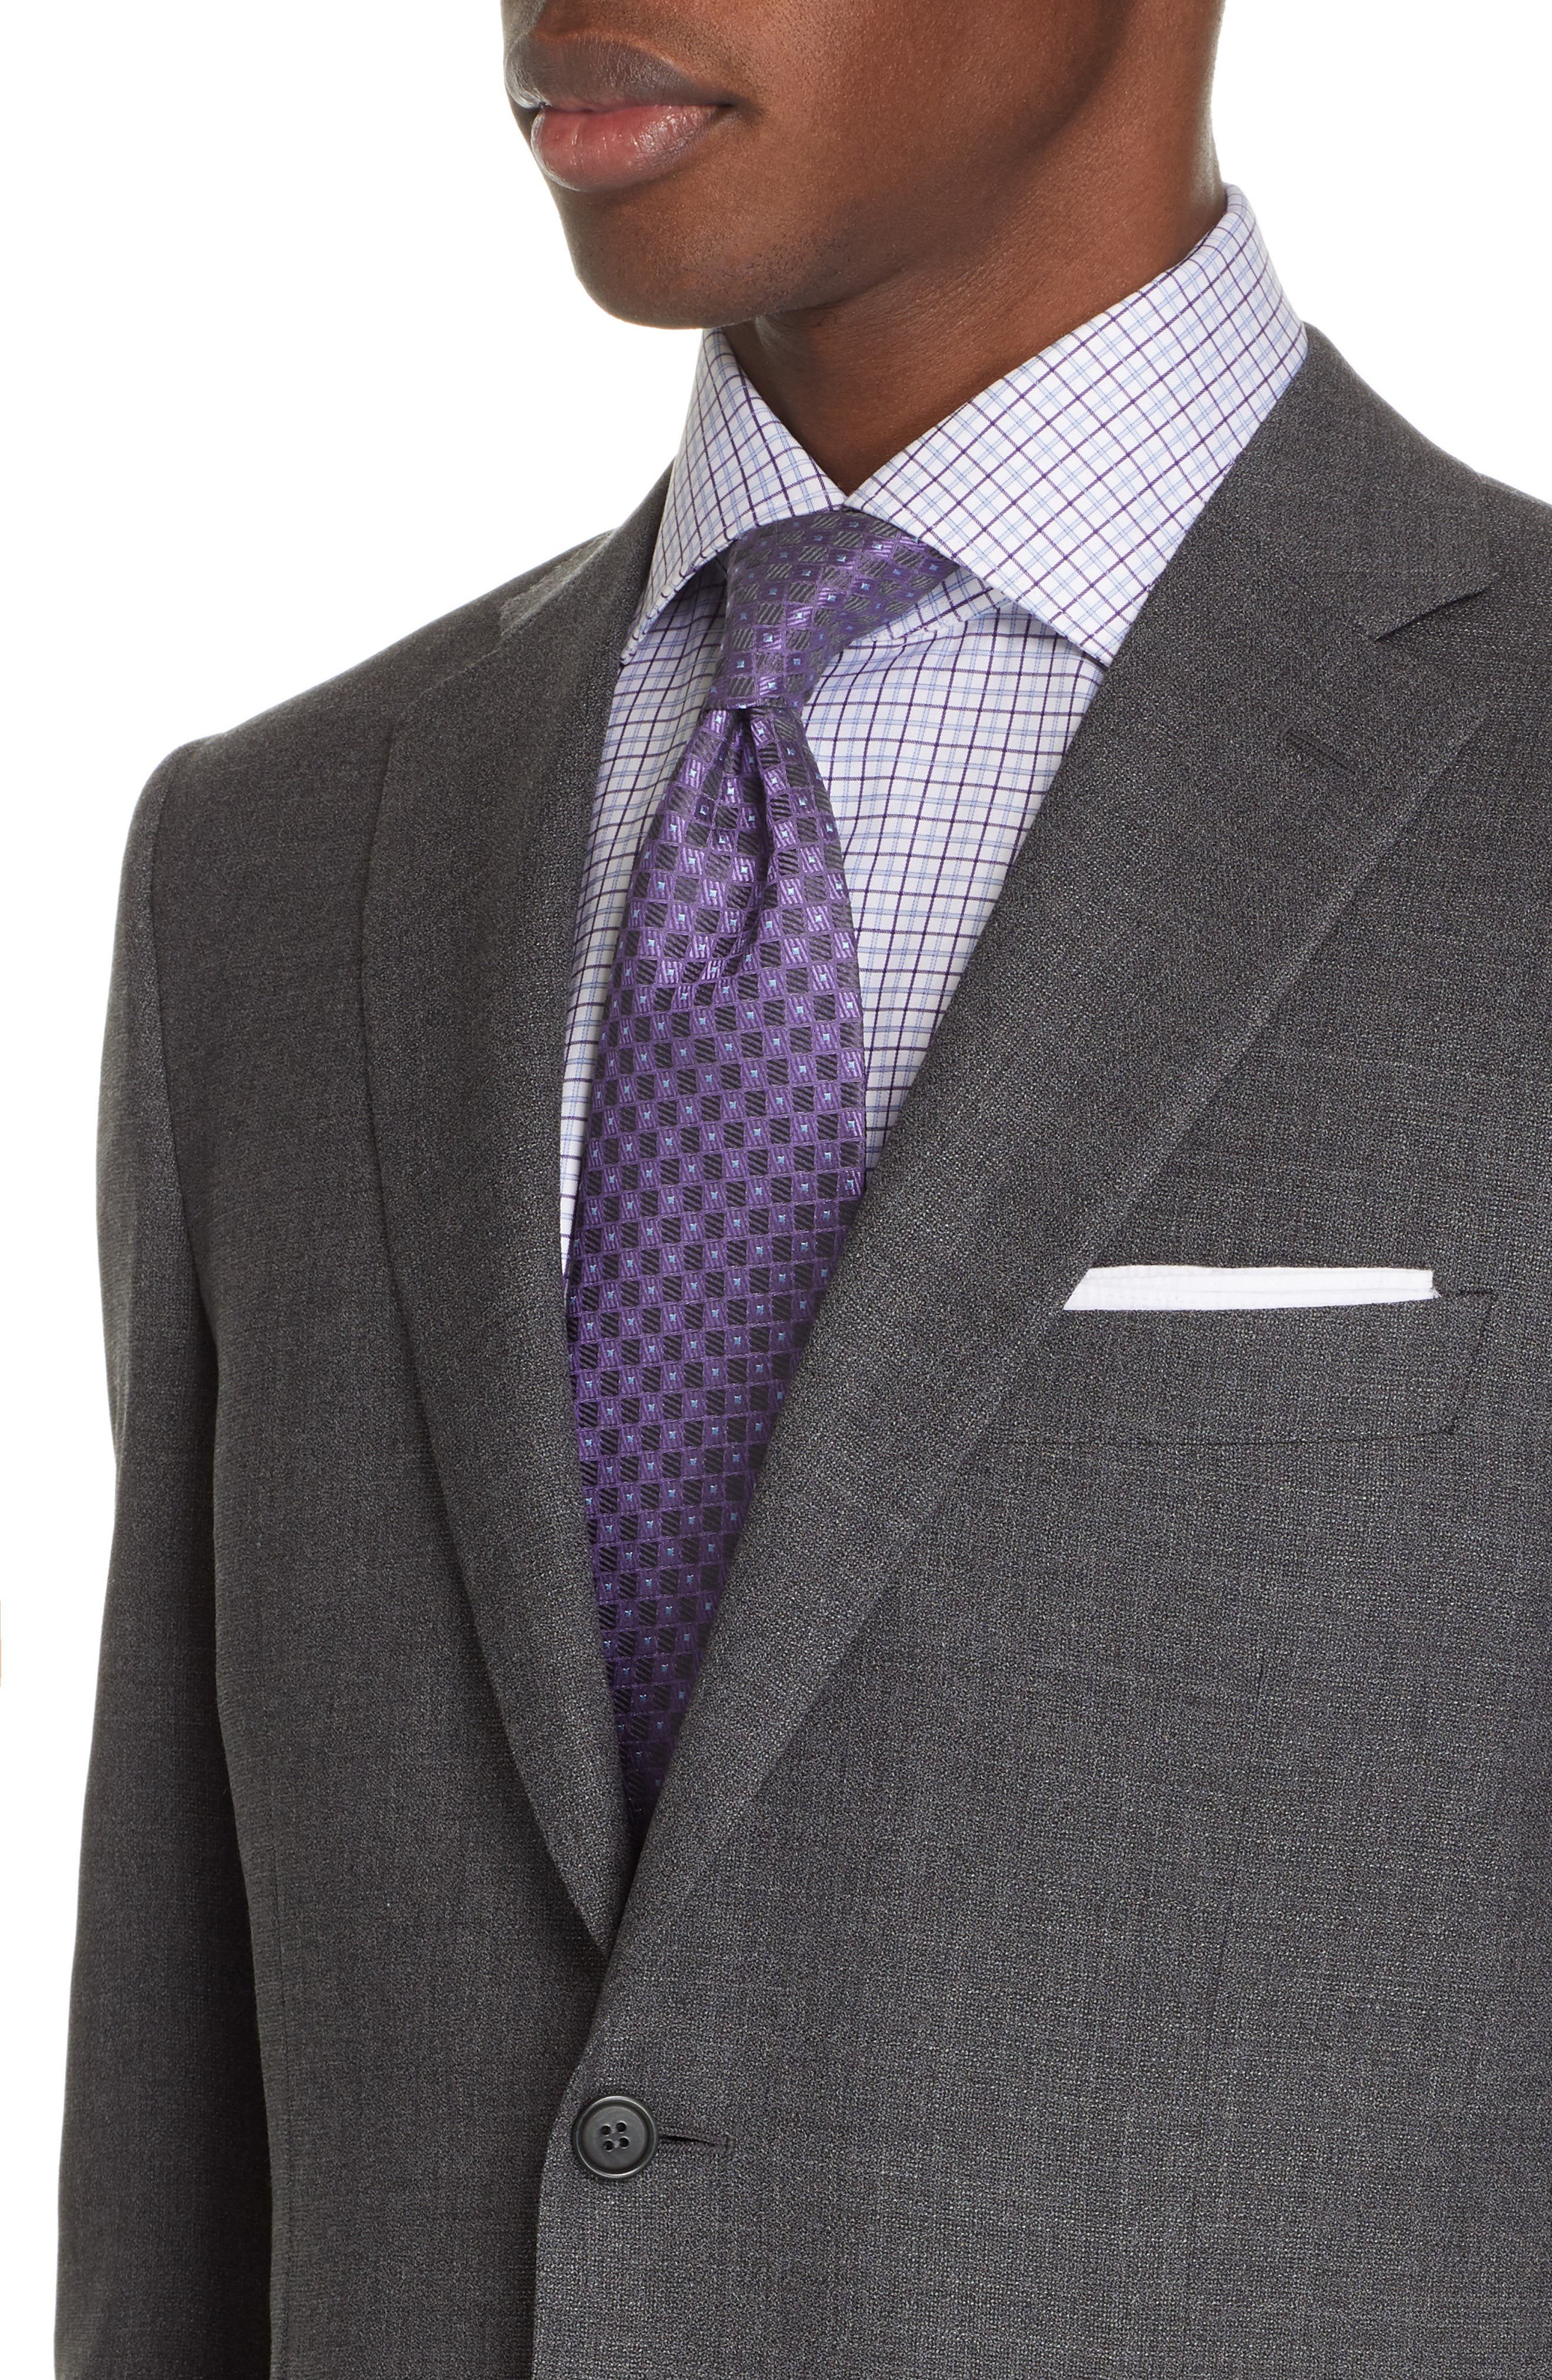 Sienna Classic Fit Solid Wool Sport Coat,                             Alternate thumbnail 4, color,                             CHARCOAL